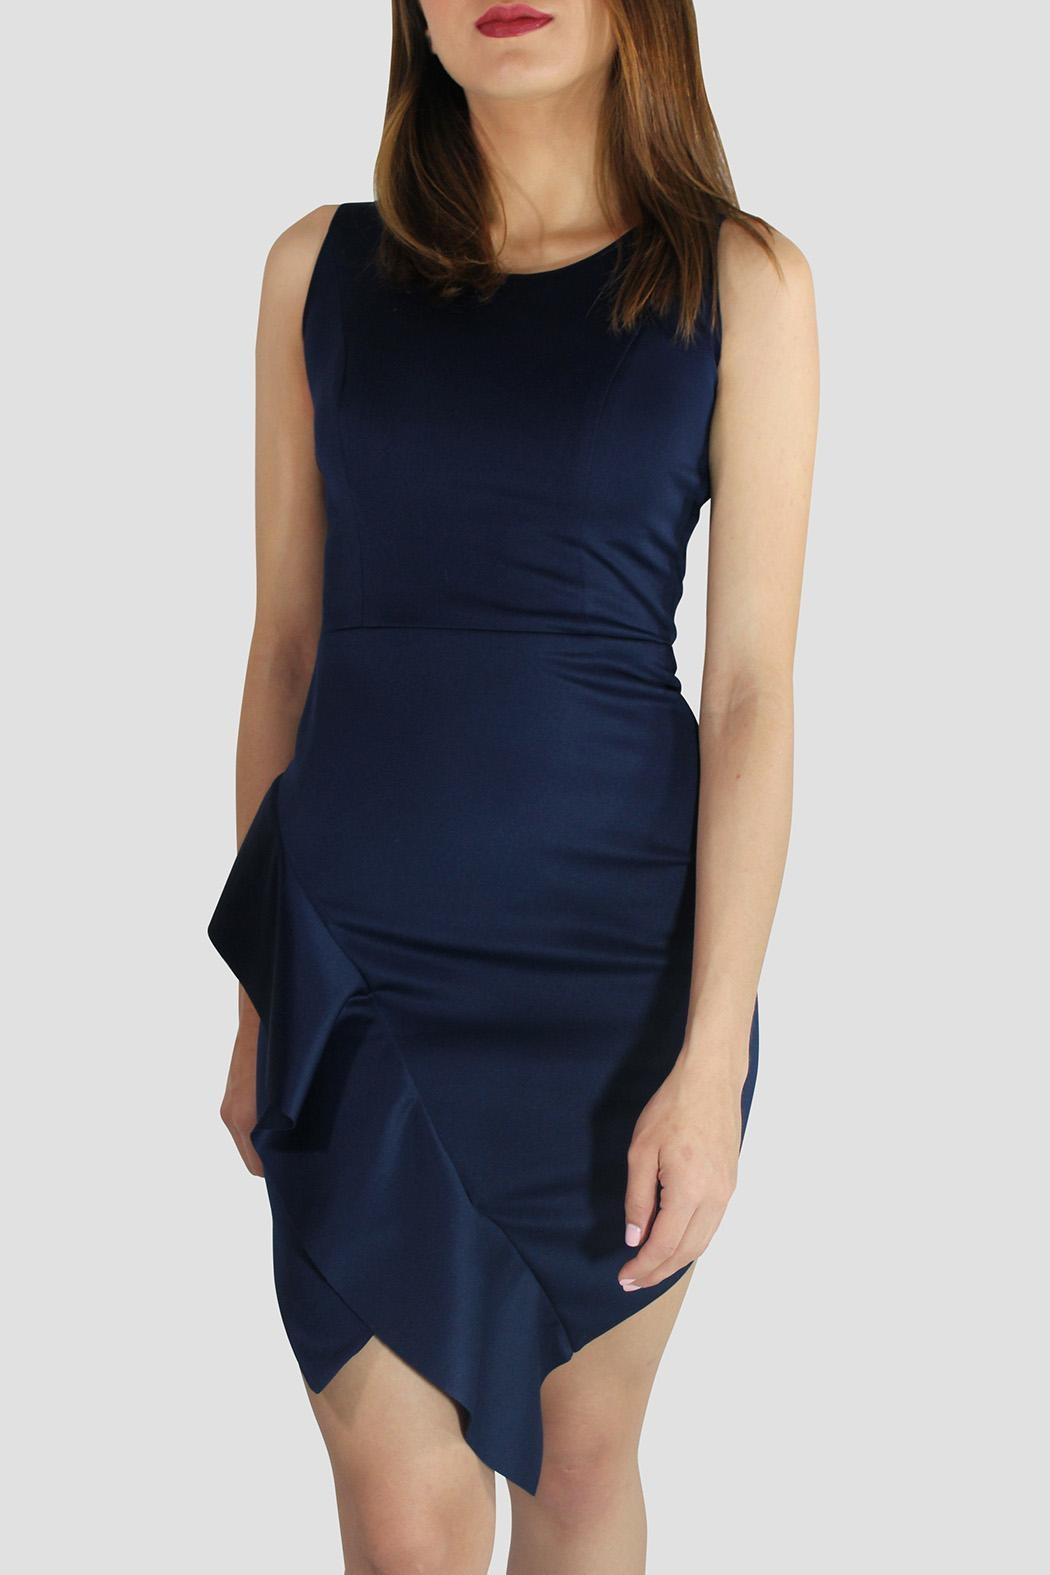 SoZu Asymmetric End Dress - Main Image